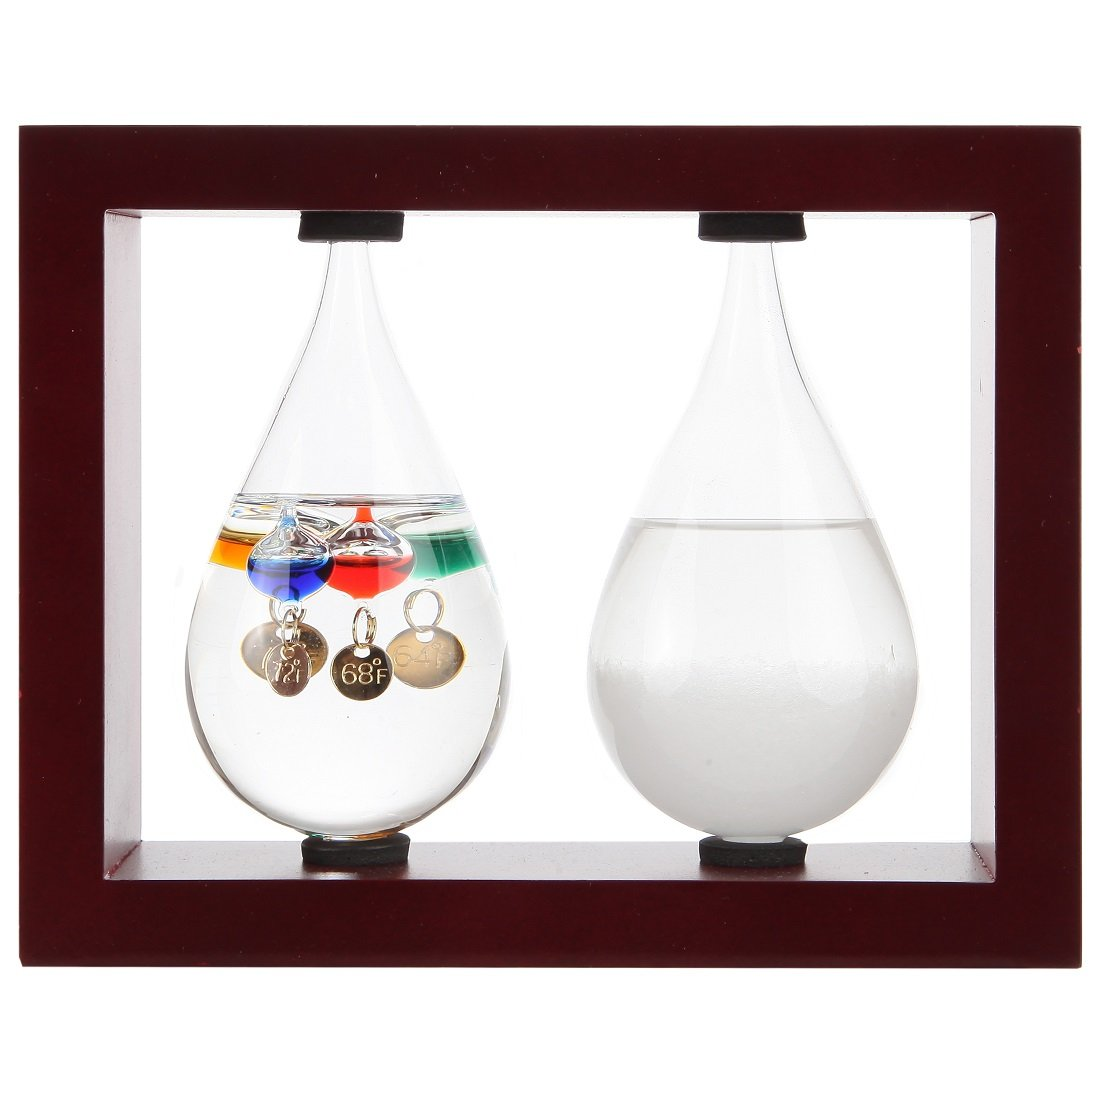 Lily's Home Desktop Weather Station, with Galileo Thermometer and Fitzroy Storm Glass Weather Predictor in Beautiful Tear Drop Shapes, 5 Multi-Colored Spheres, Cherry (7.25 in x 5.75 in)